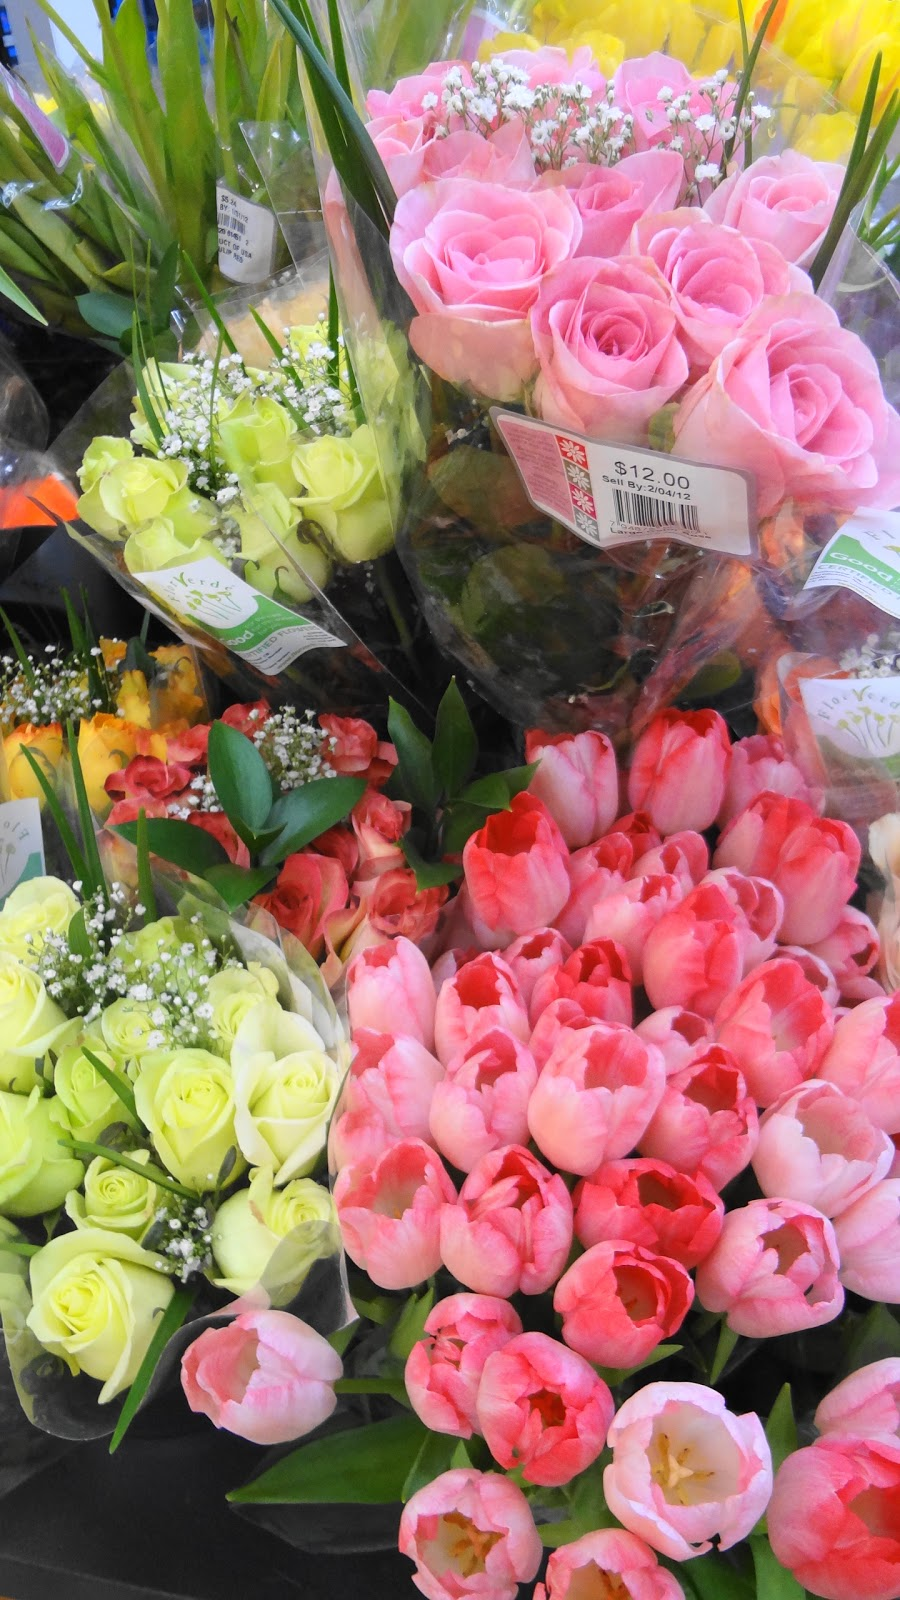 Does Walmart Sell Flower Bouquets Images - Flower Wallpaper HD